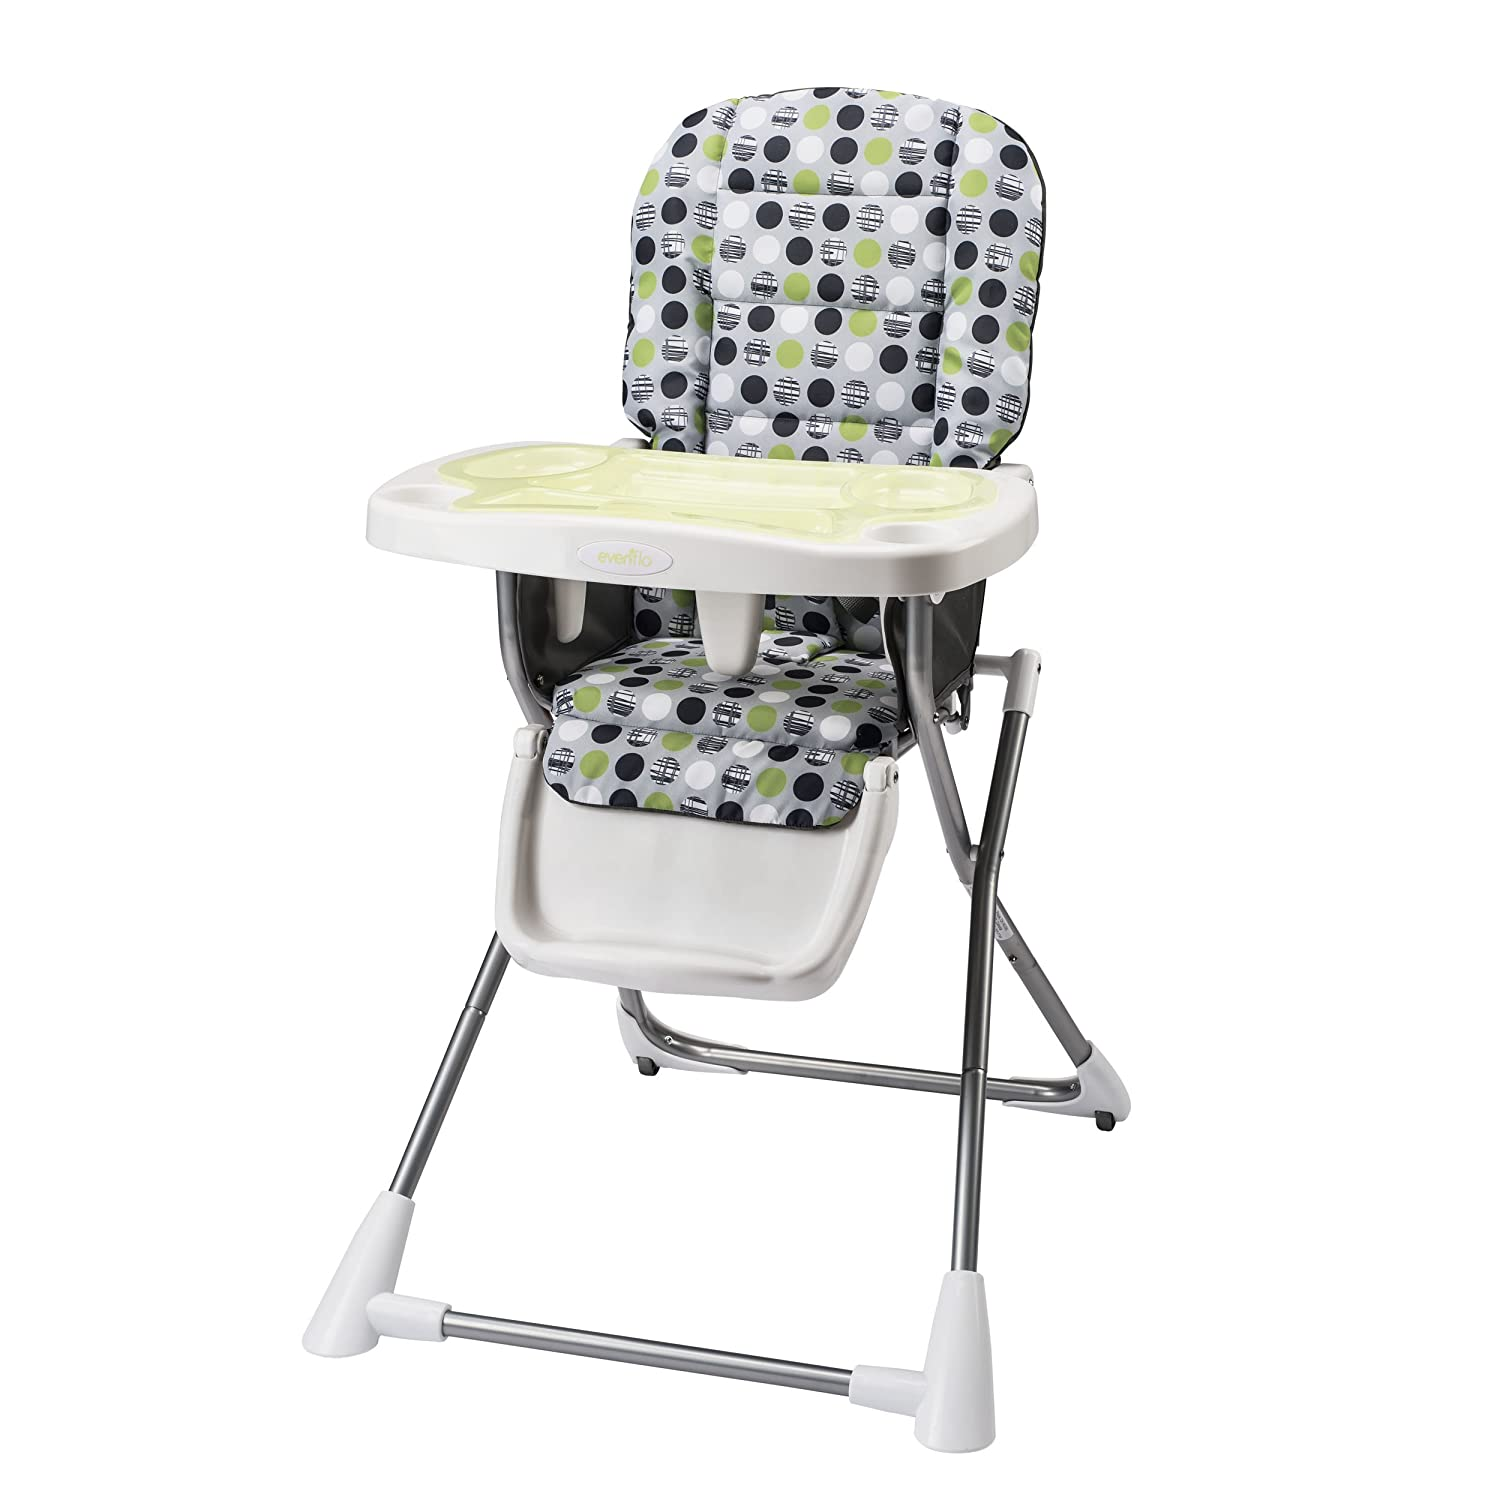 evenflo majestic high chair jungle wedding covers in cornwall top 10 best baby adjustable chairs 2016 2017 on